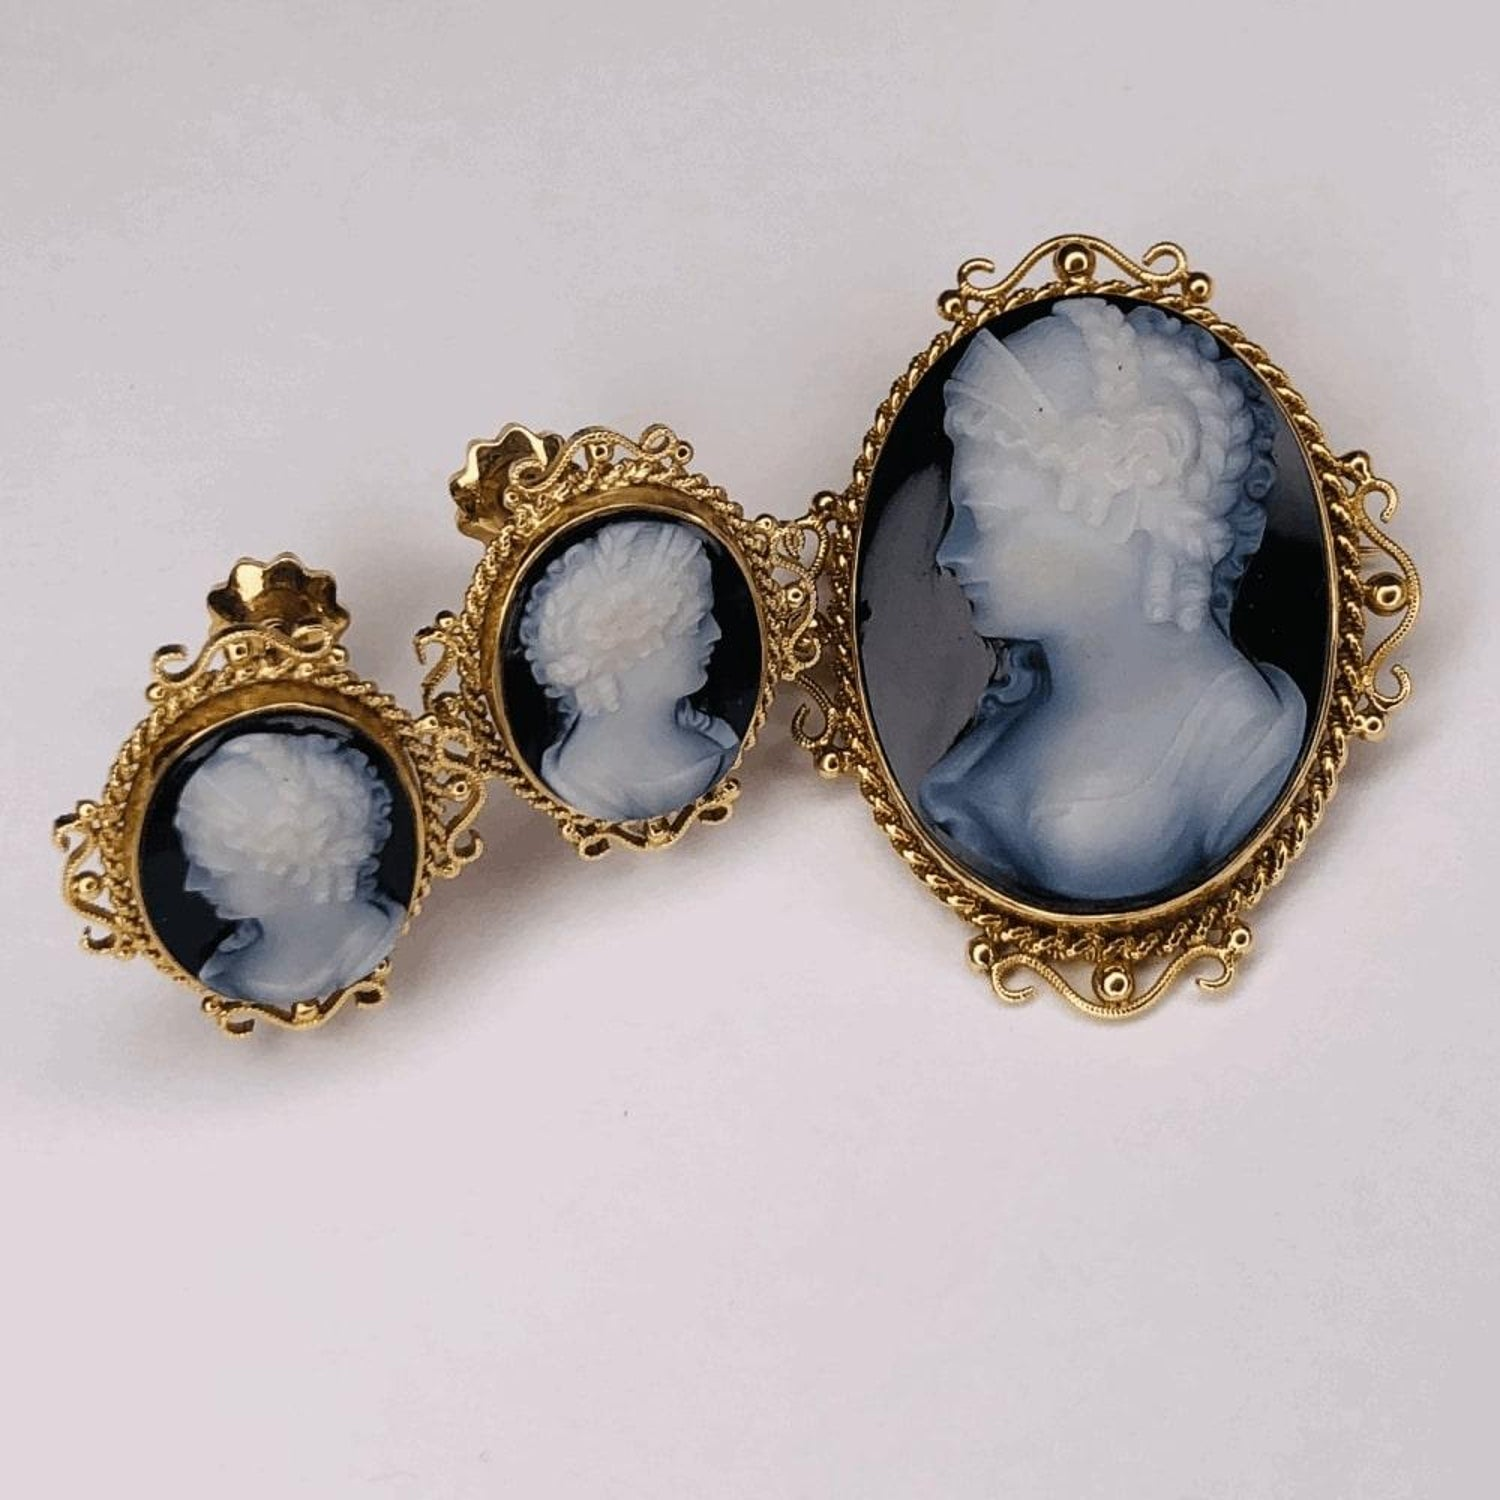 9b89f9f8e Victorian Carved Onyx Cameo Gold Brooch Pendant and Earrings Fine Estate  Jewelry For Sale at 1stdibs